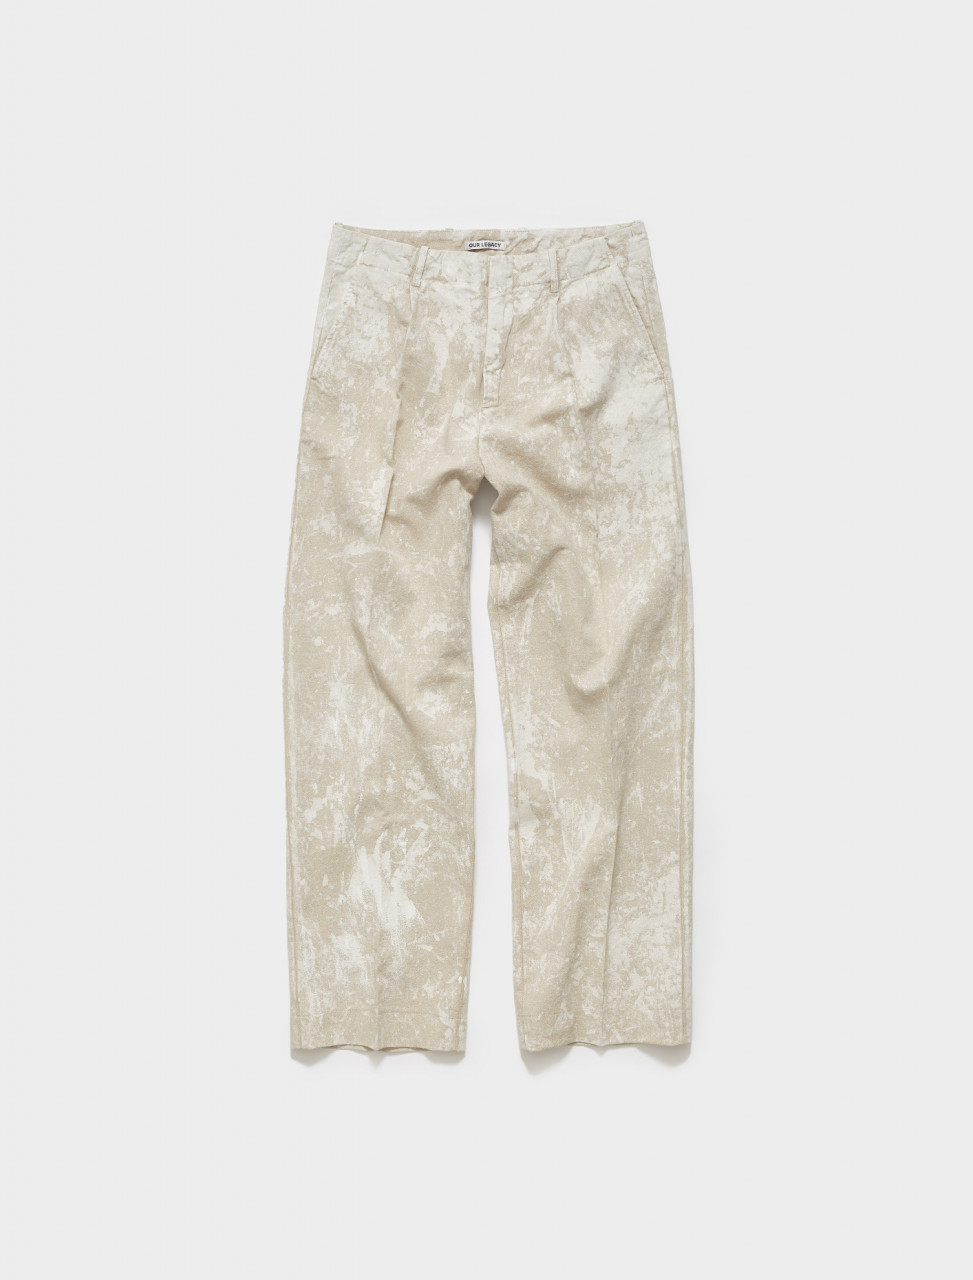 M421BWW OUR LEGACY BORROWED CHINO IN WHITE COATED LINEN